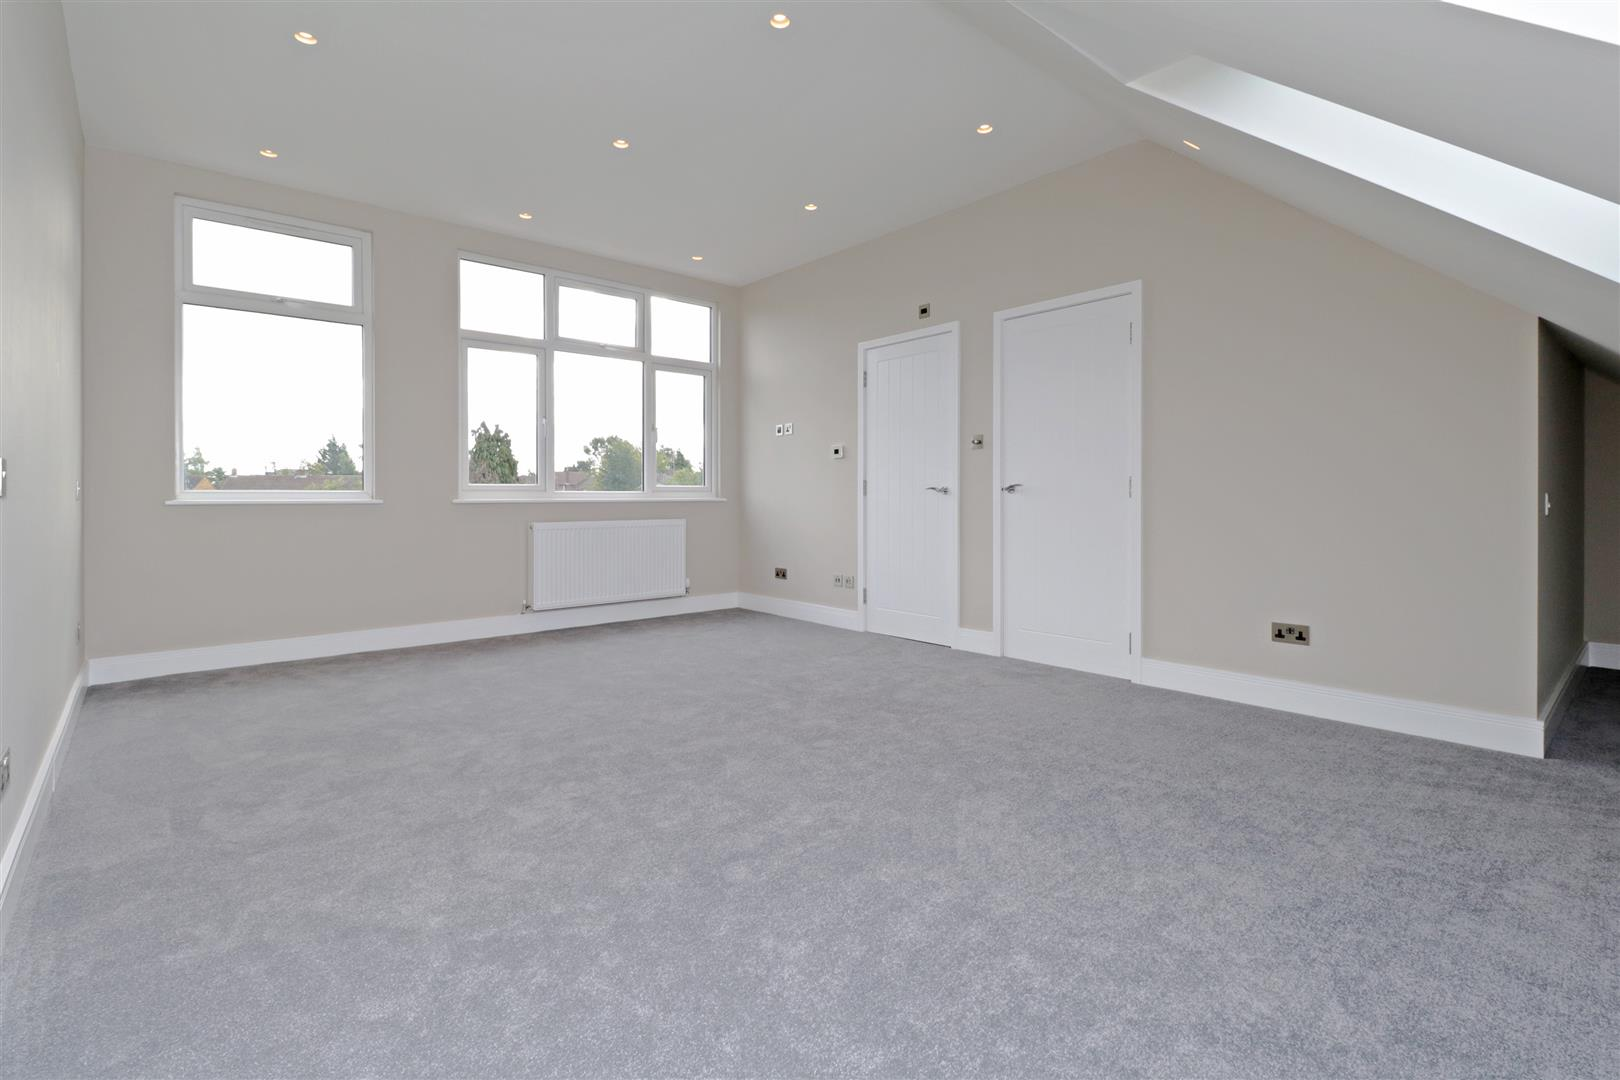 4 bed to rent in Loom Lane, Radlett - (Property Image 10)